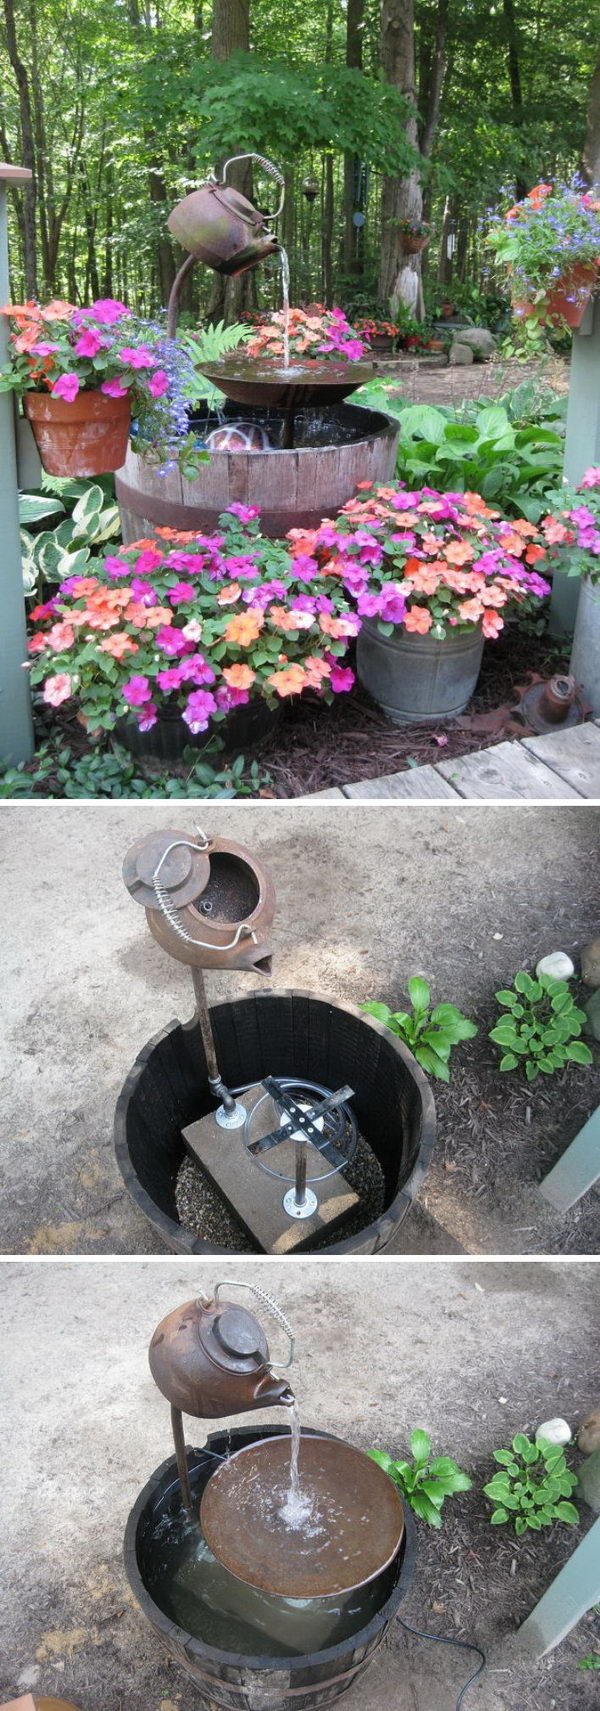 30 fun and whimsical diy garden projects hative